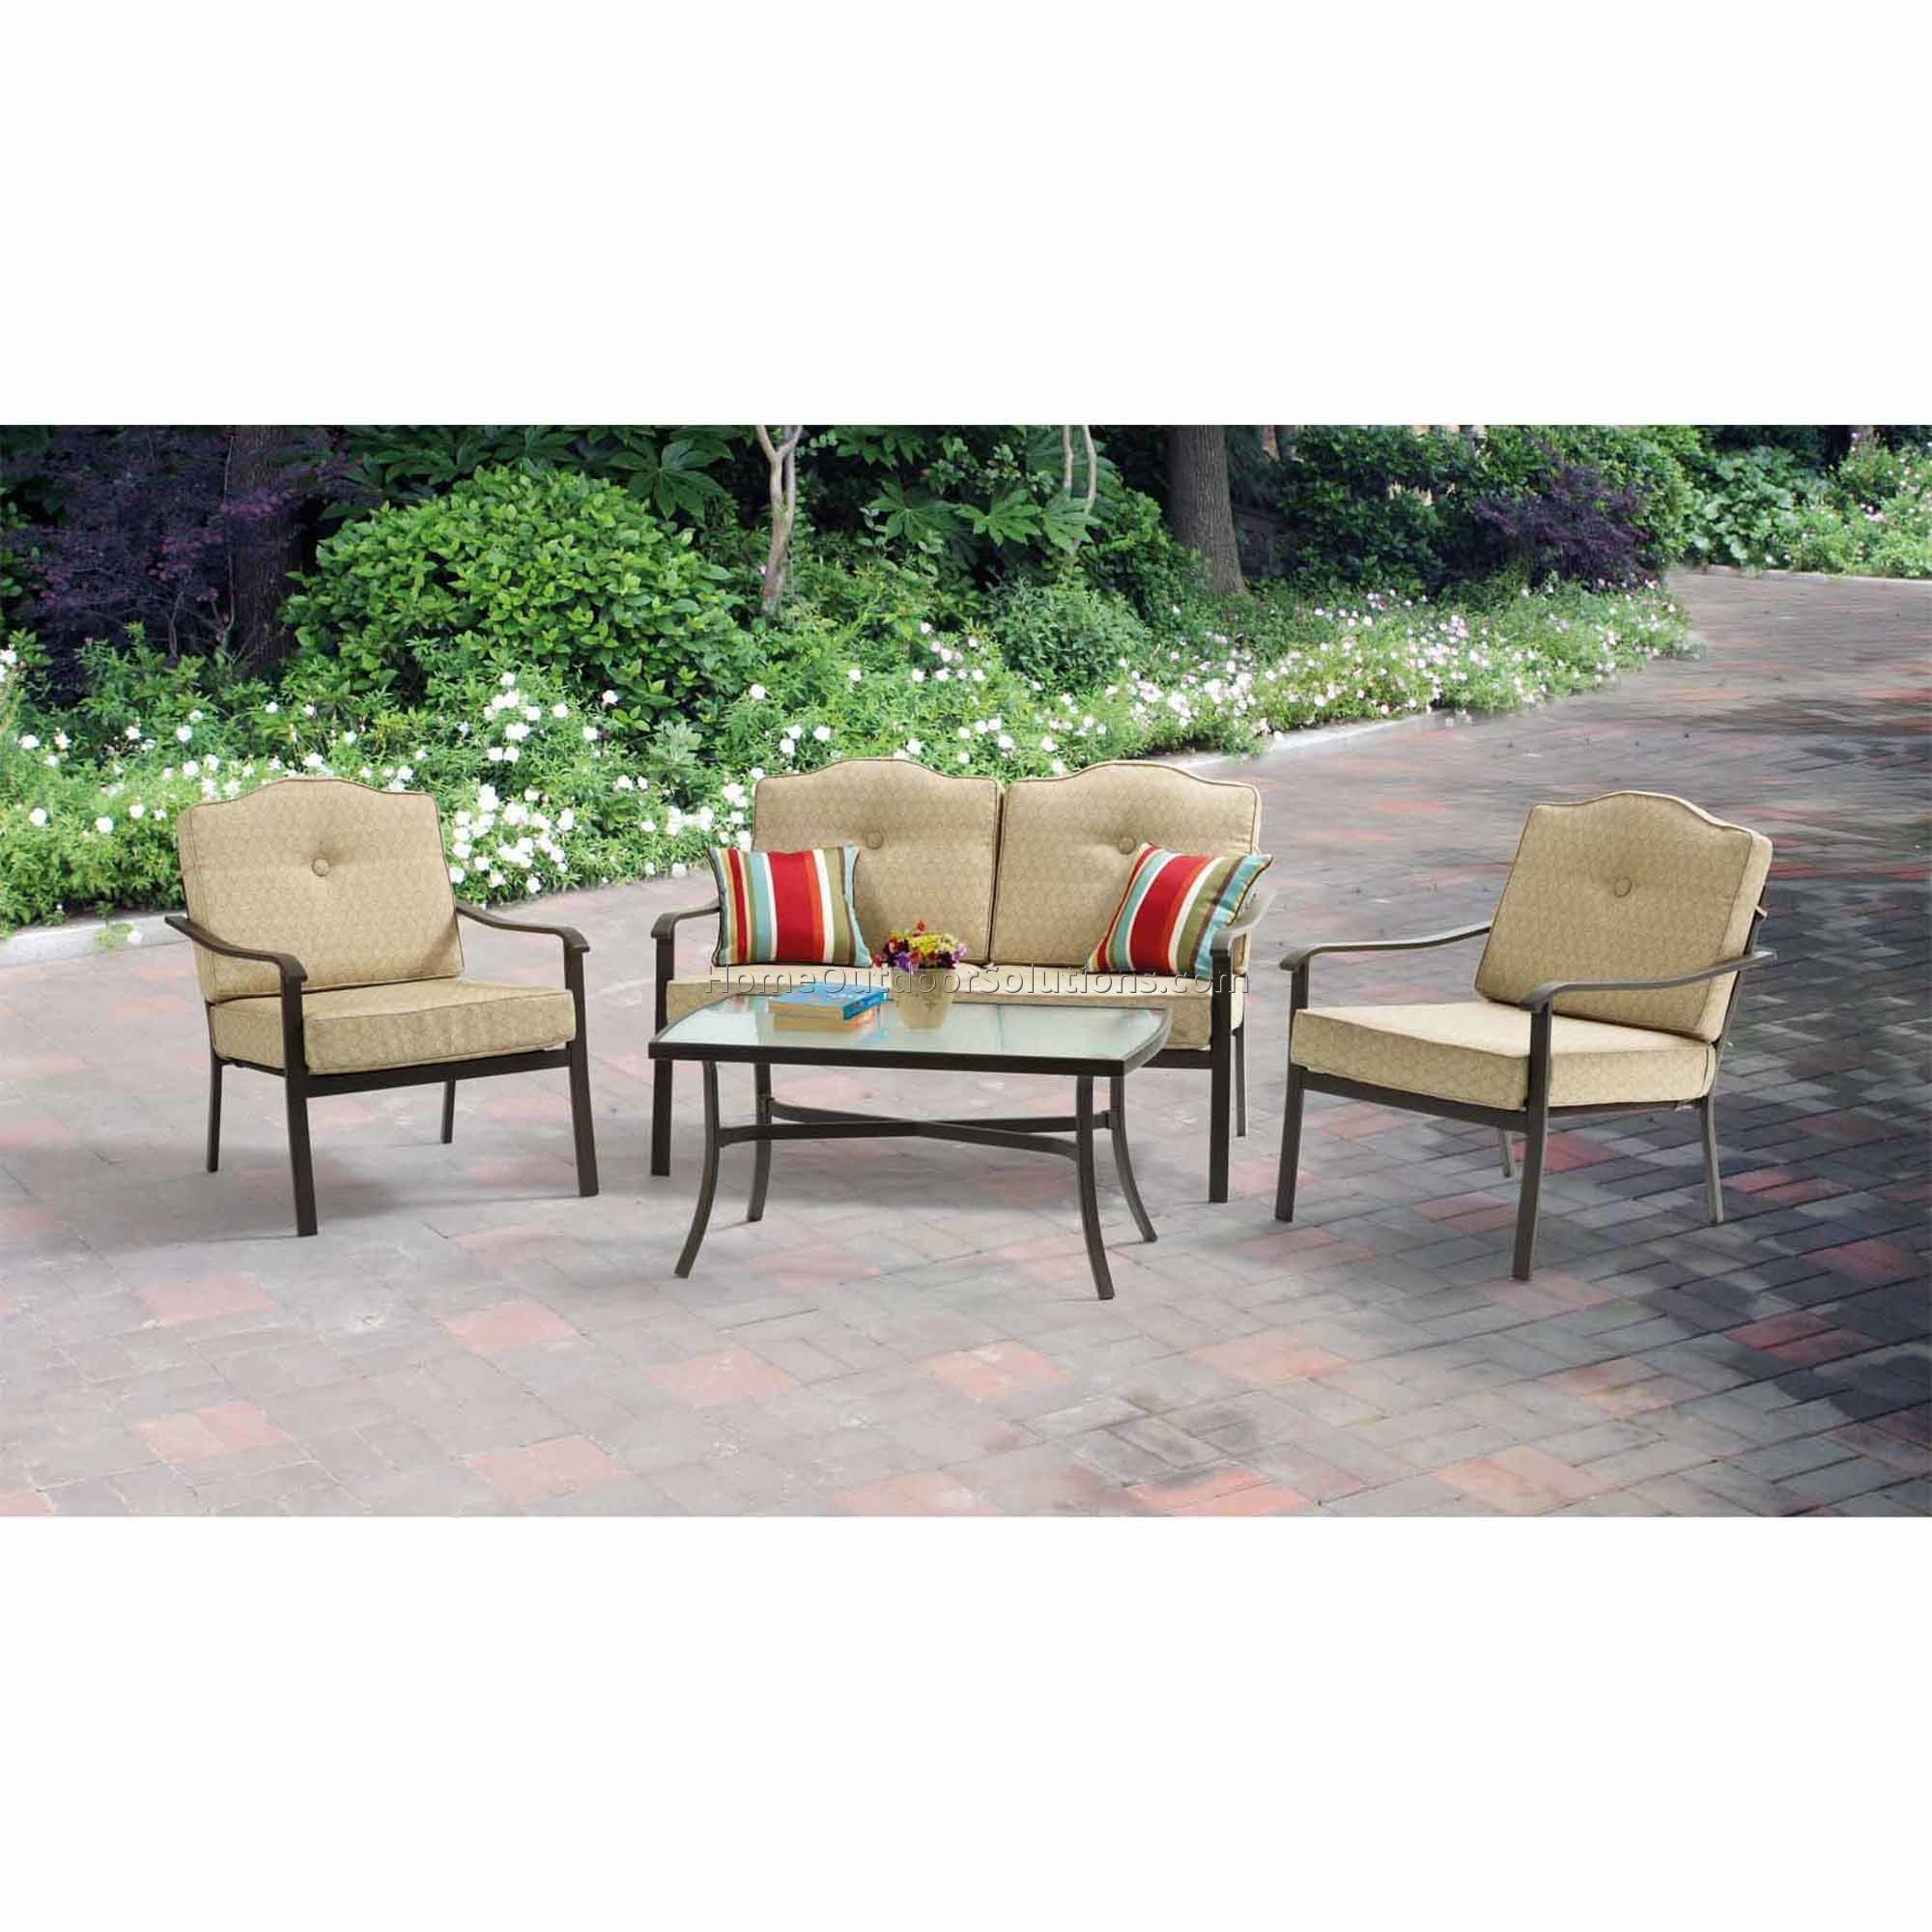 Patio Furniture Woodland Hills Patio Decor Pinterest - Woodland patio furniture